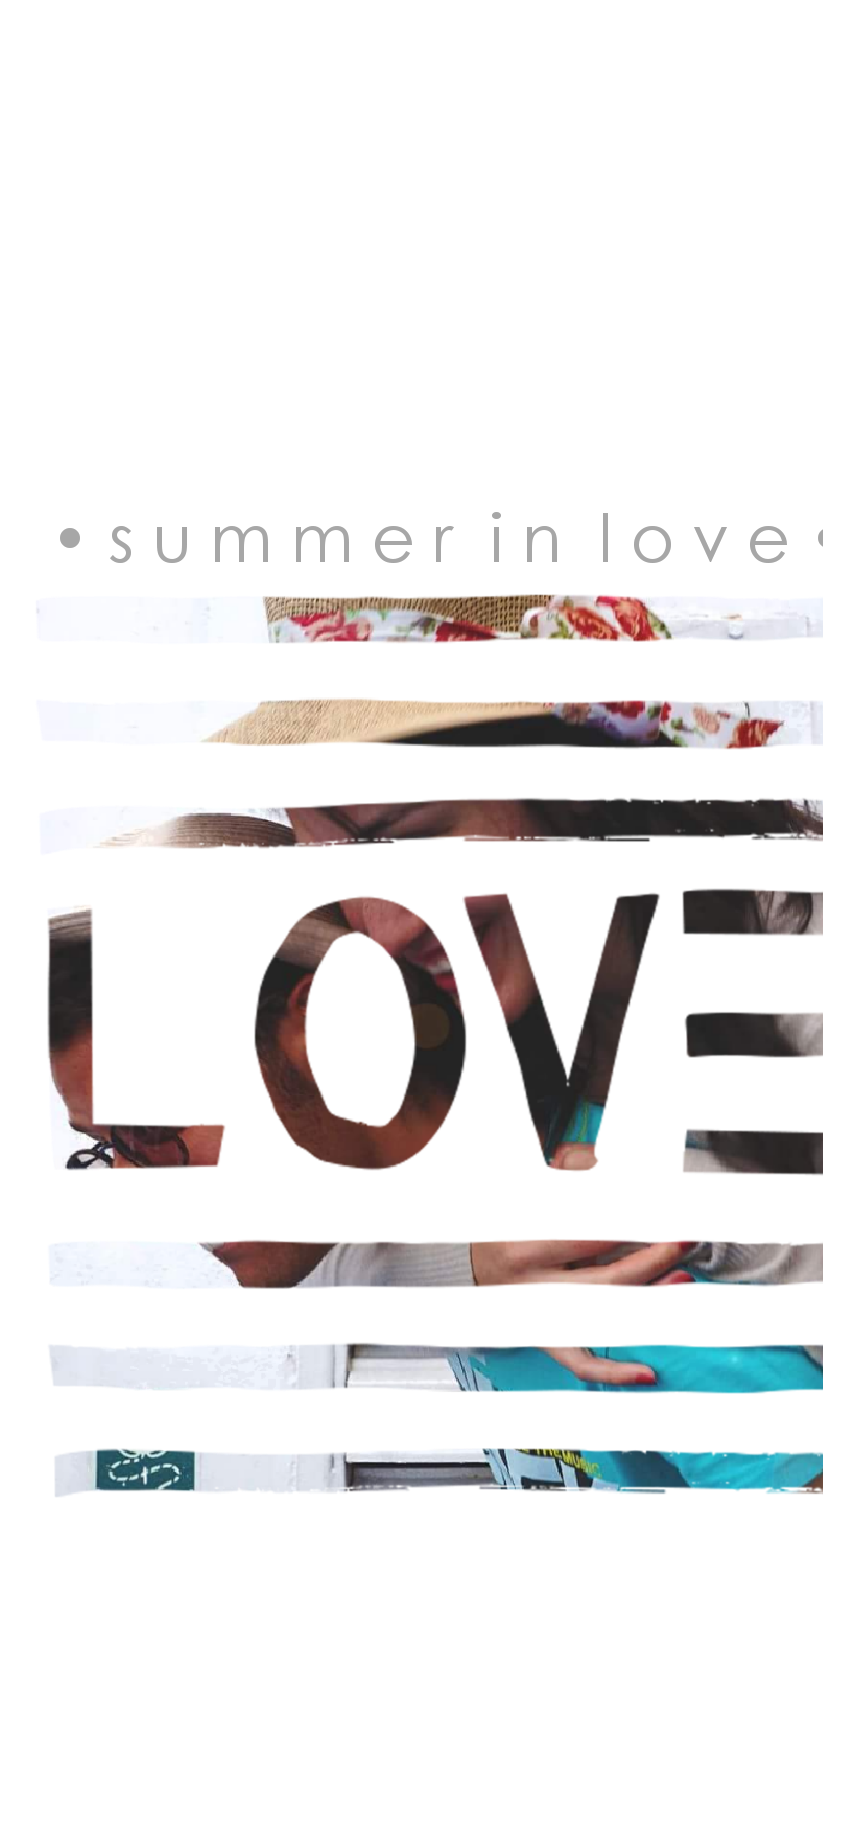 cover summer is love